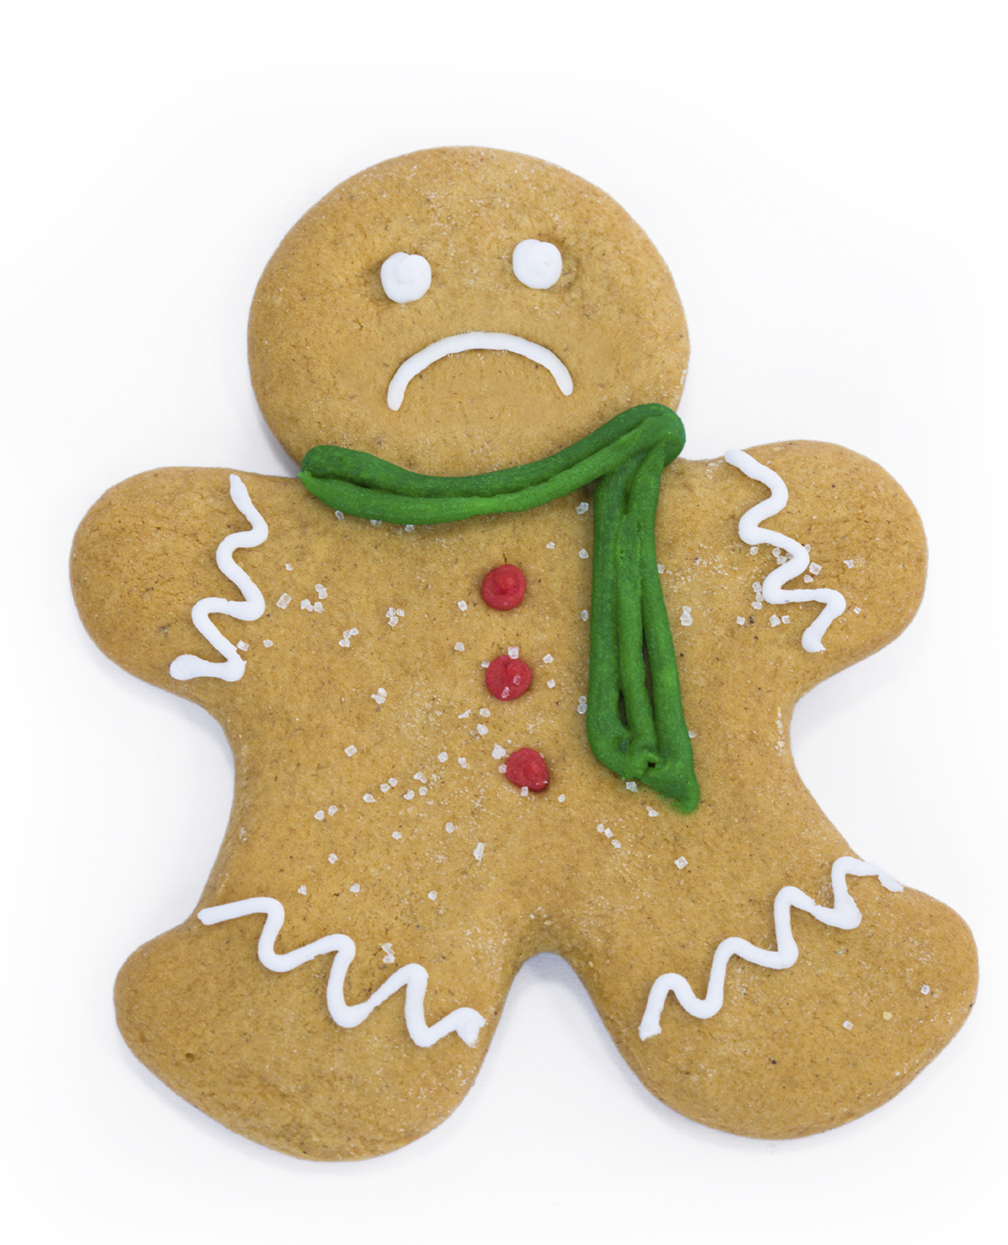 Holiday Season Not Always A Gift for Allergy Sufferers